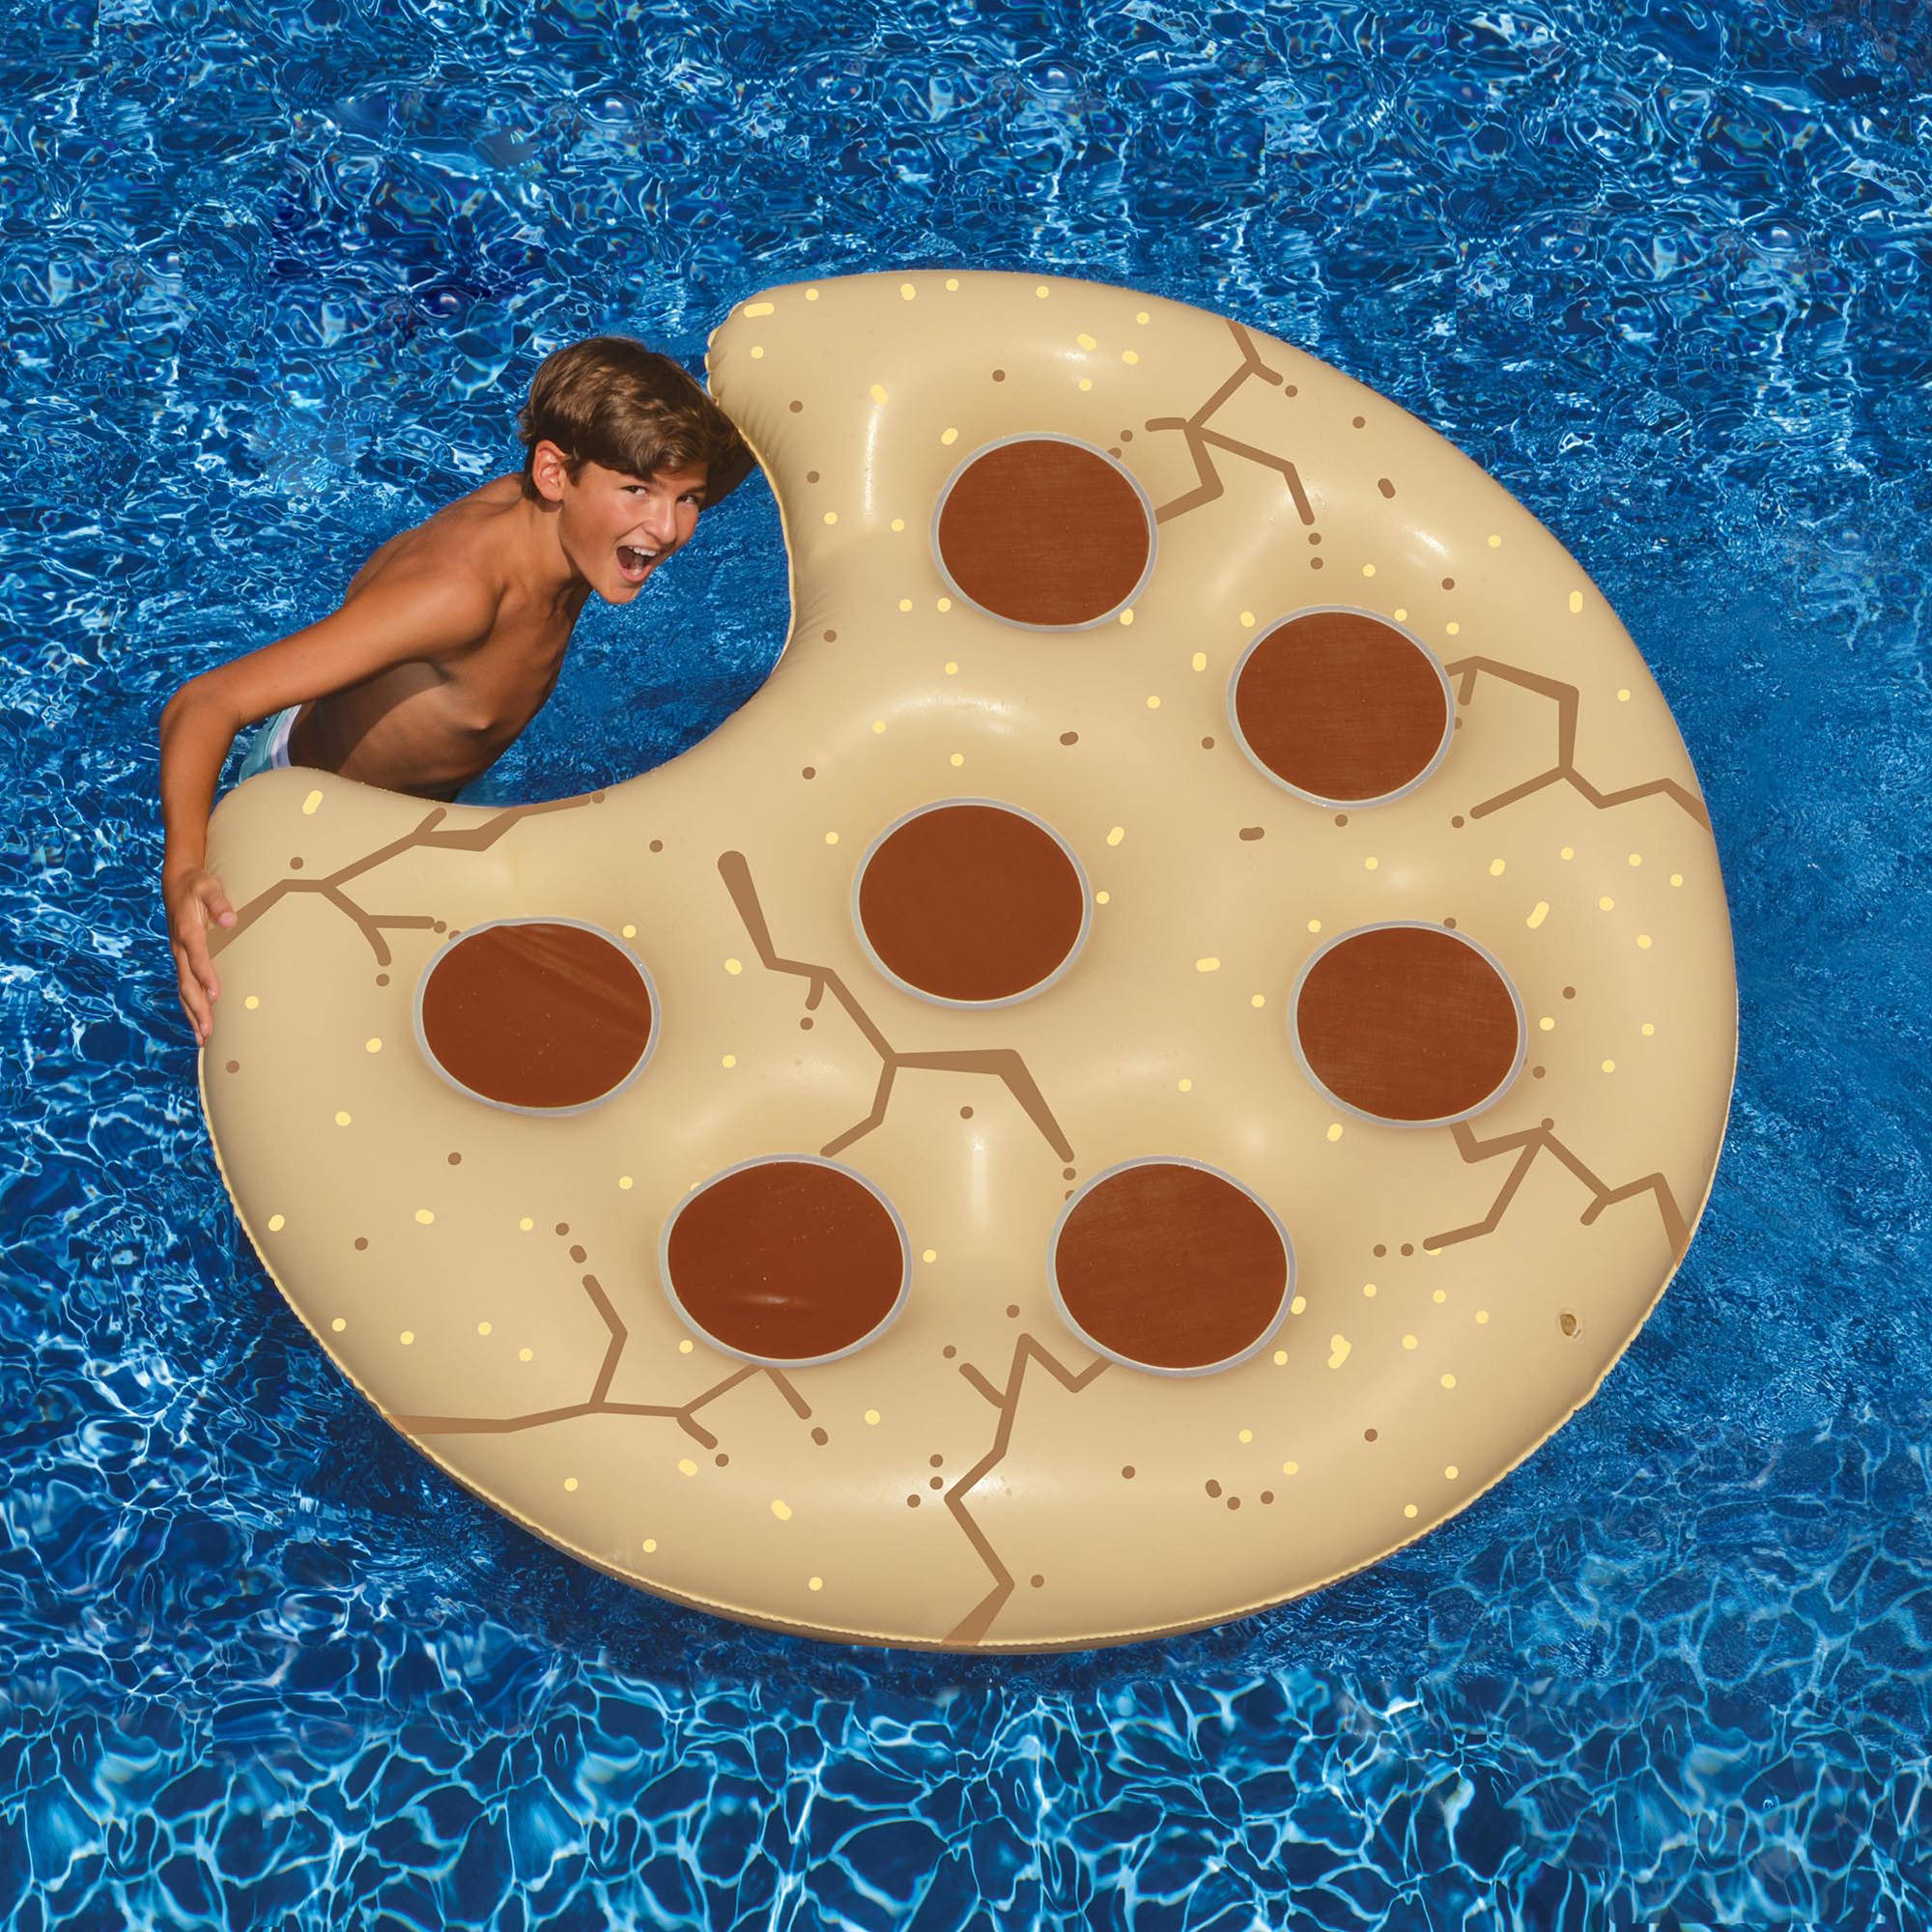 "Cookie Float 60"" Inflatable Pool Toy Walmart"